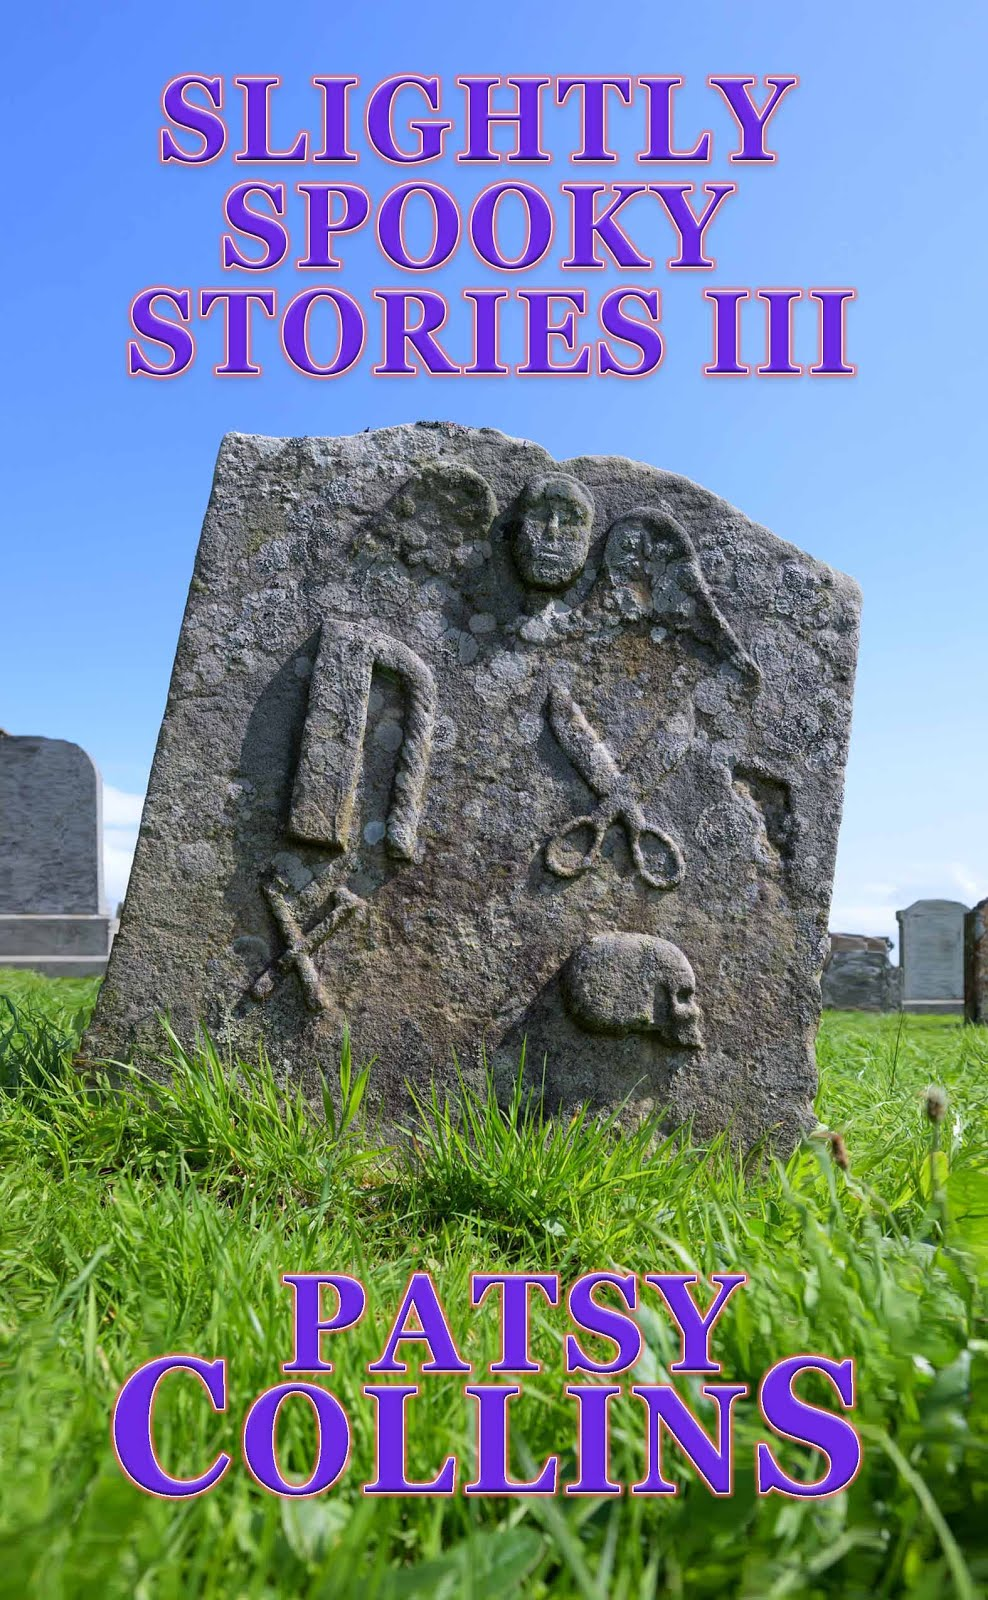 Slightly Spooky Stories III